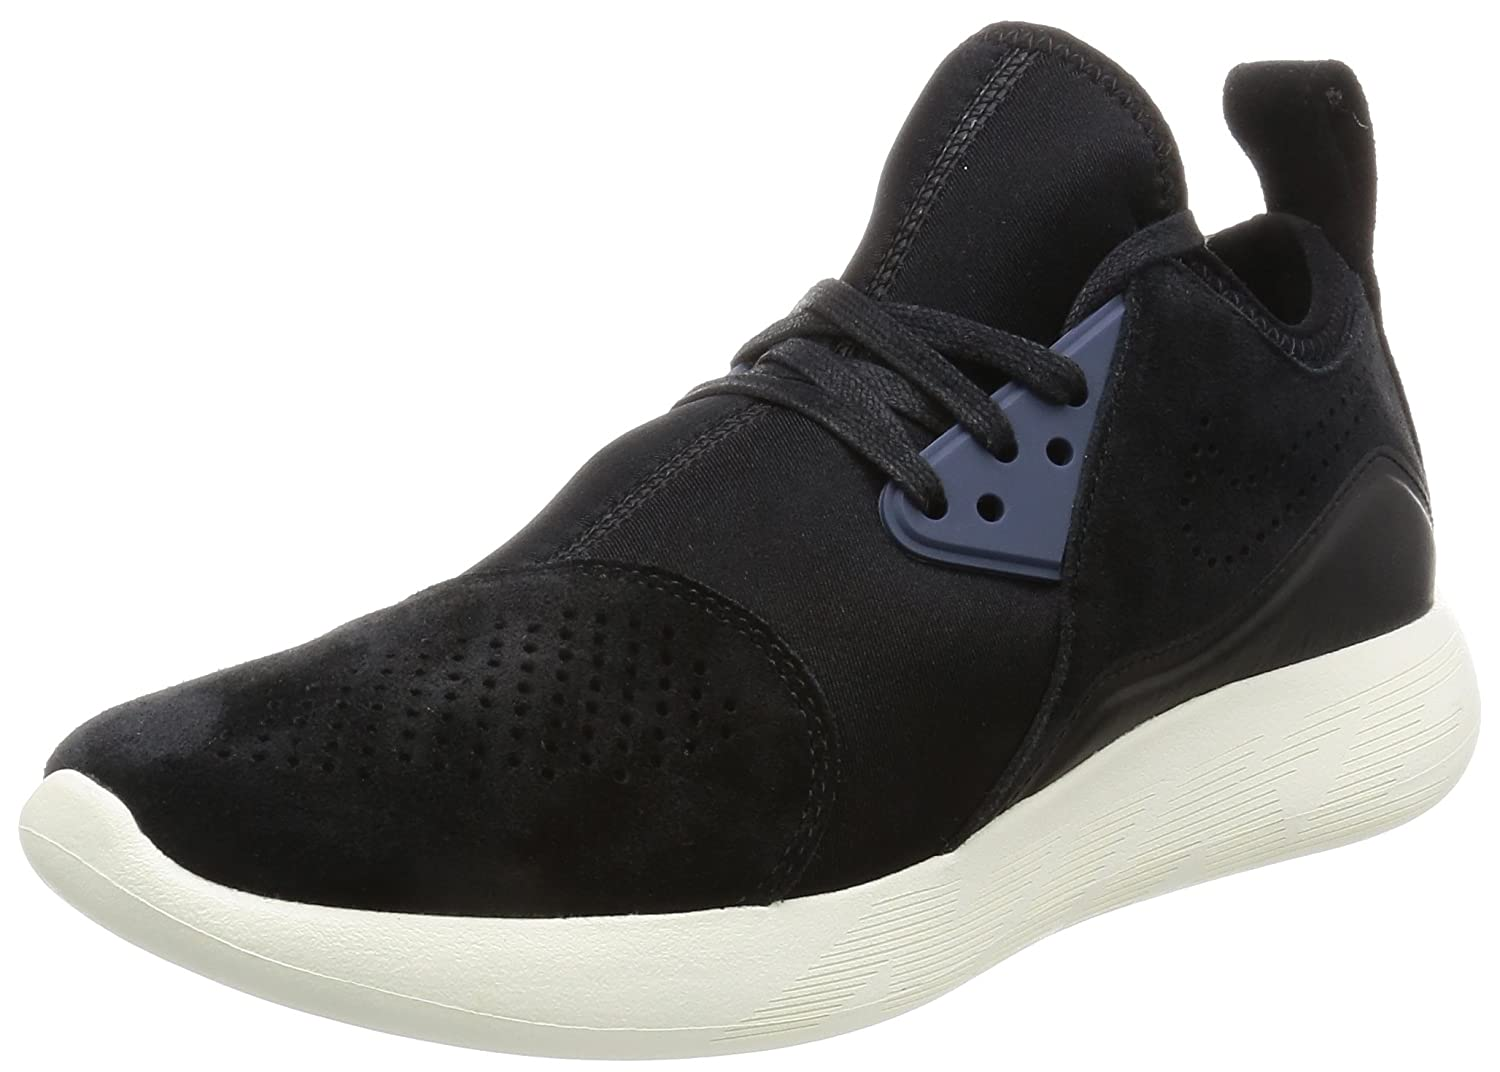 Nike Uomo Lunarcharge Lunarcharge Lunarcharge Premium Ankle-High Running Shoe 9bdc26